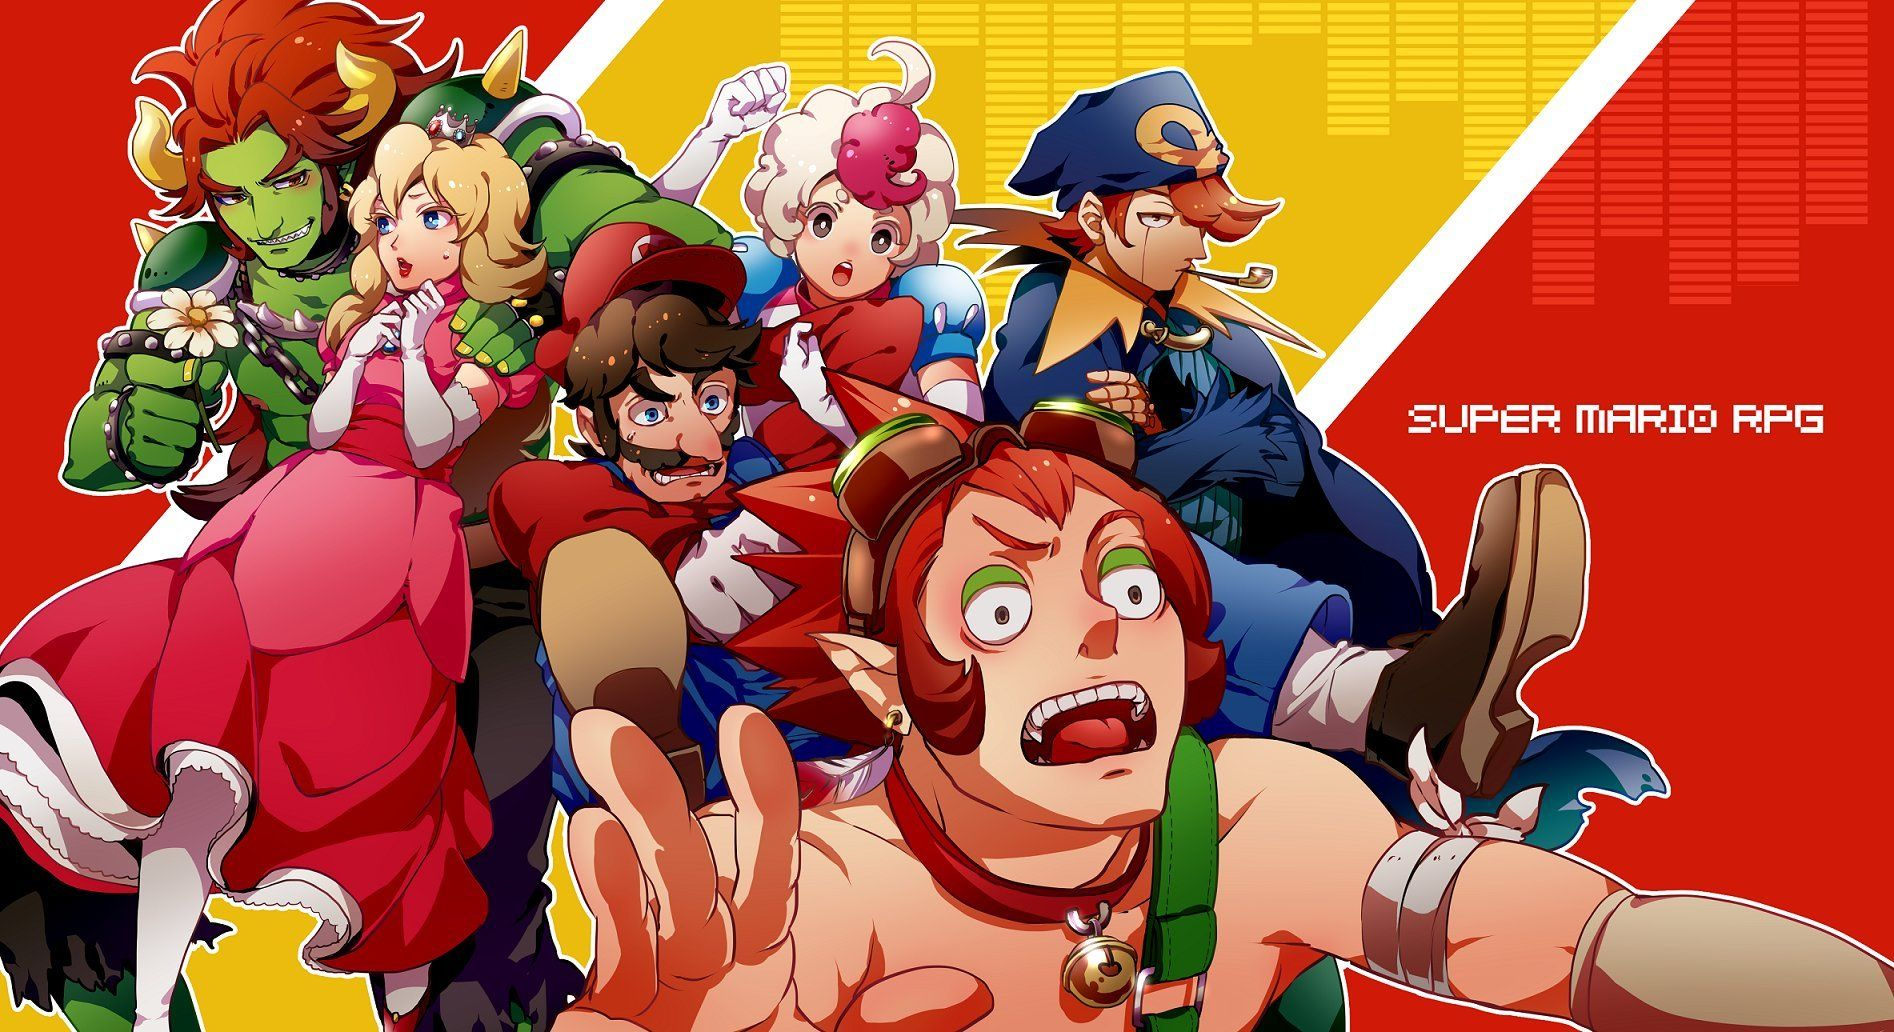 If your favorite franchises were turned into anime super mario rpg